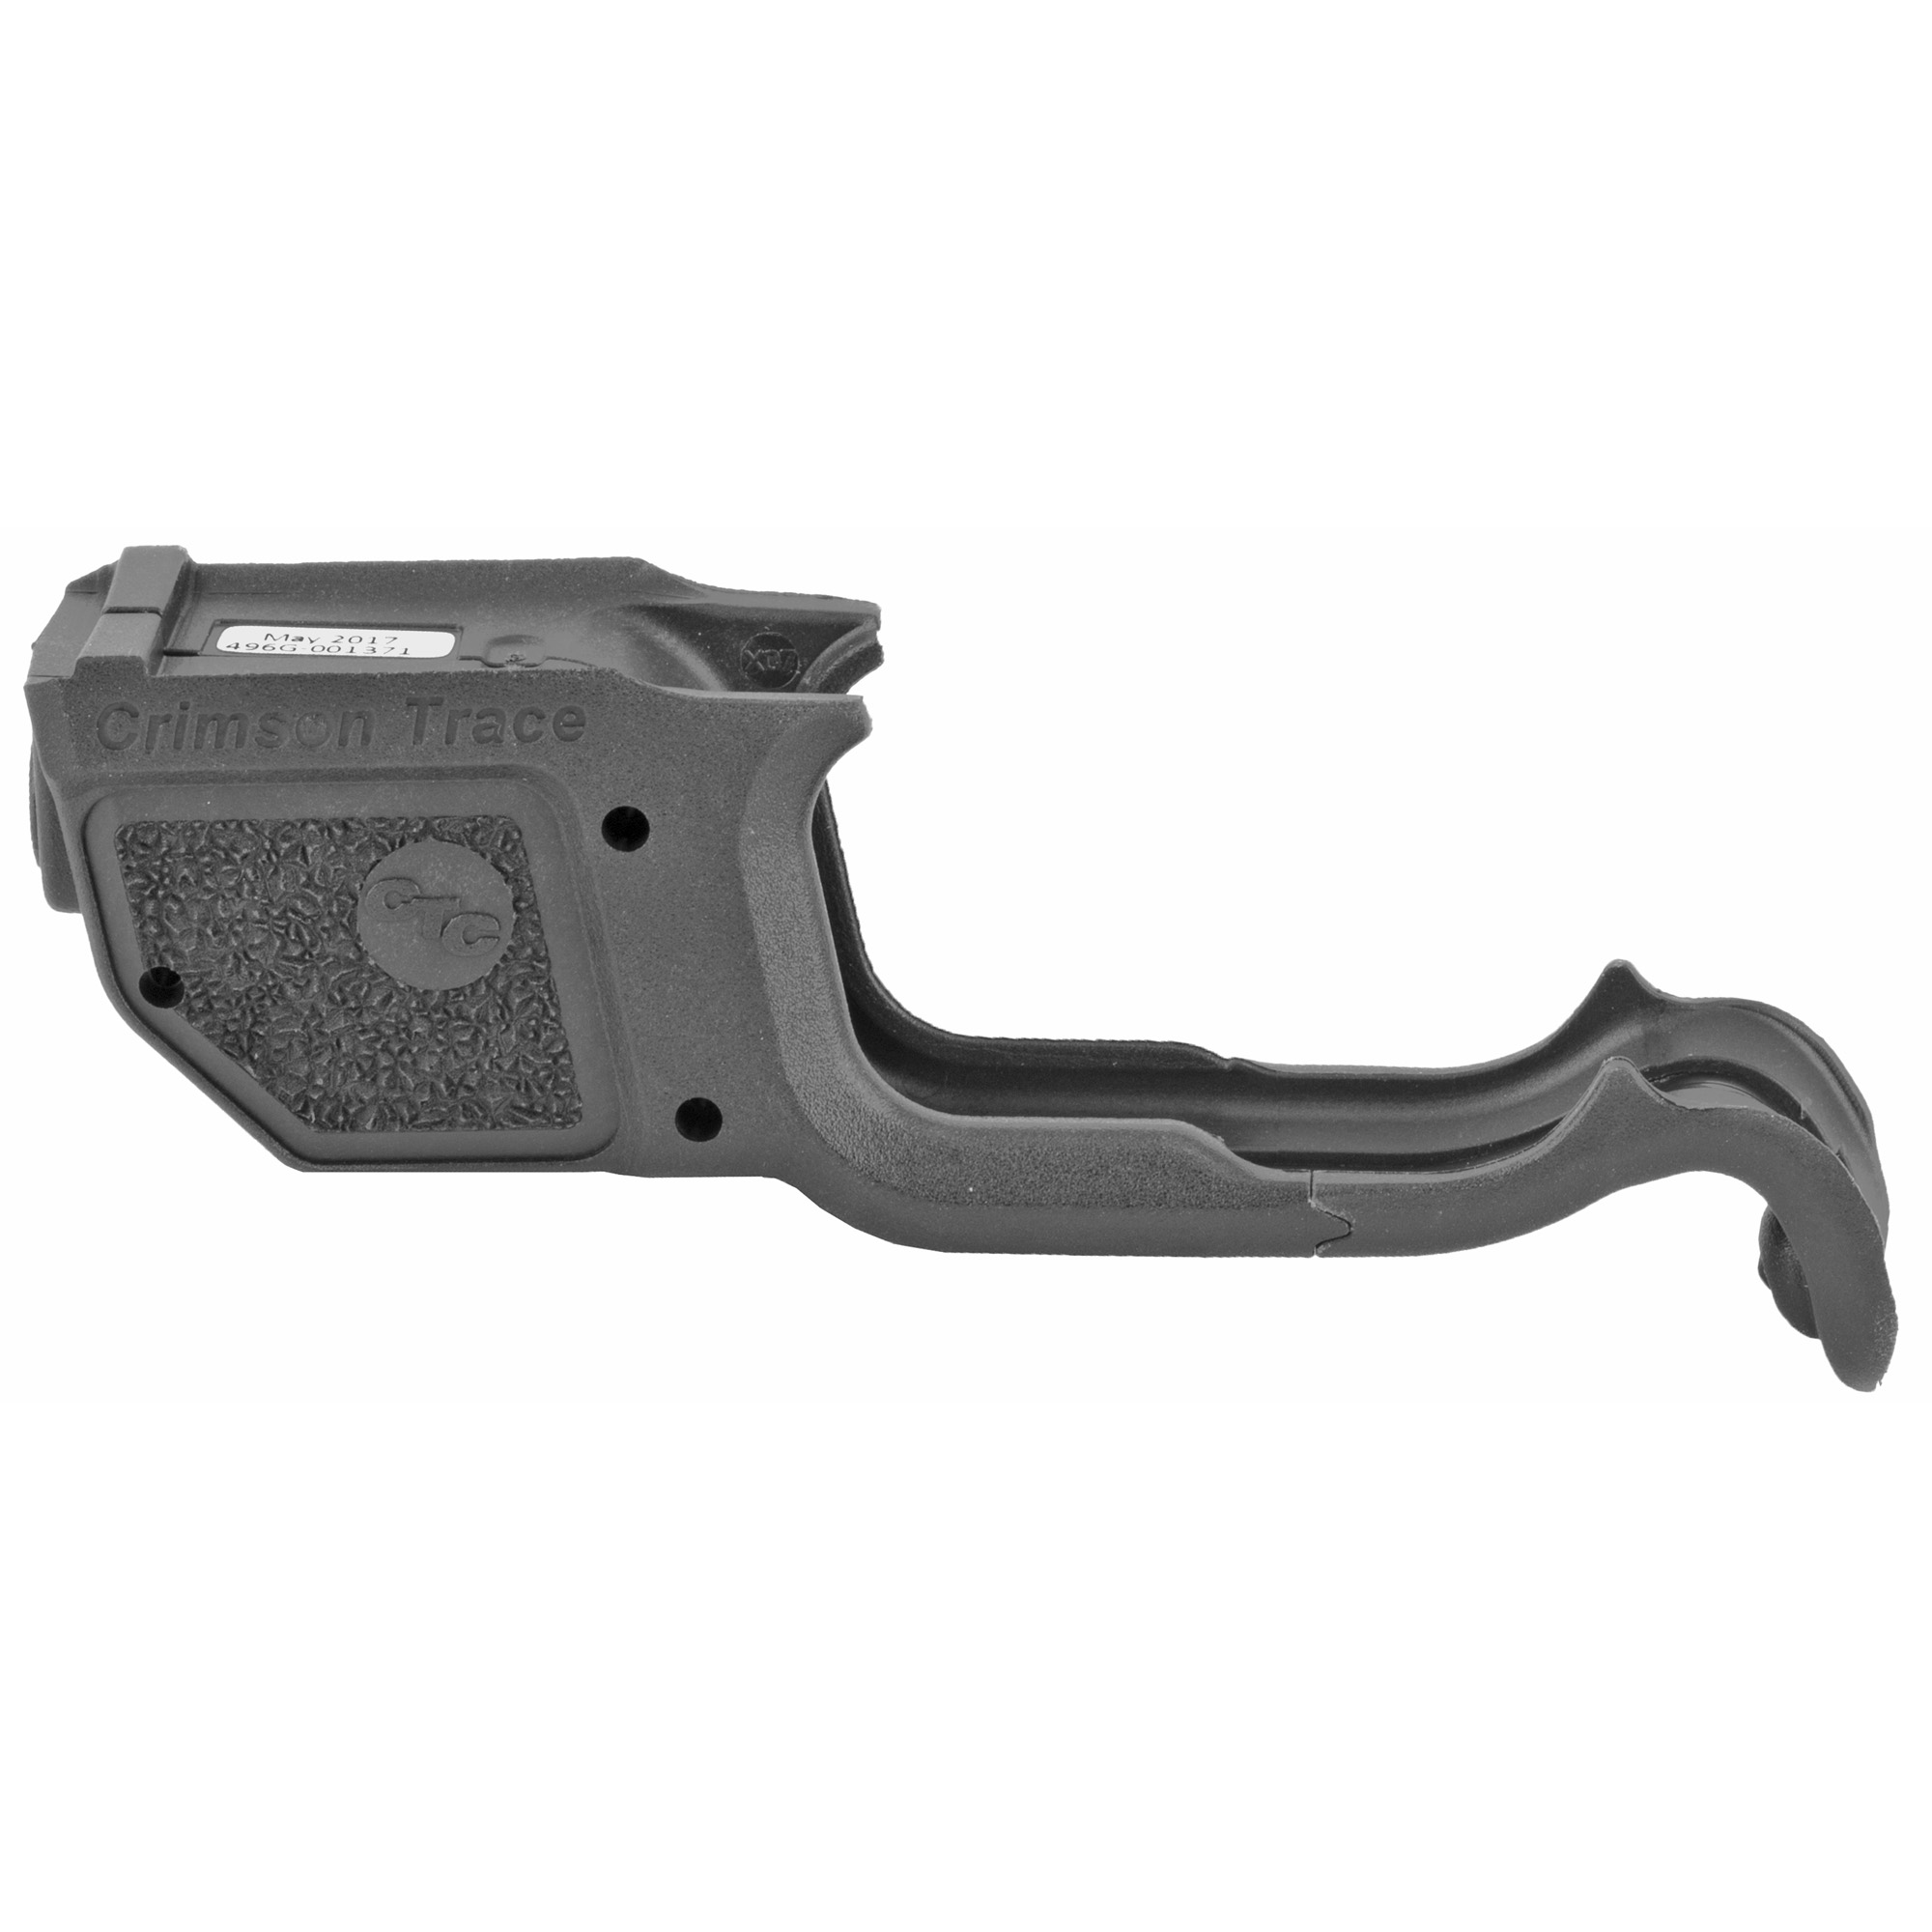 """The LG-496G Green Laserguard(R) is a compact green laser sight for Springfield Armory's XD MOD.2 Series pistols. Attached firmly to the trigger guard"""" the laser's slim profile matches that of the pistol"""" and features Crimson Trace's trademark Instinctive Activation(TM). The laser sight is user-installed in minutes and is adjustable for windage and elevation."""